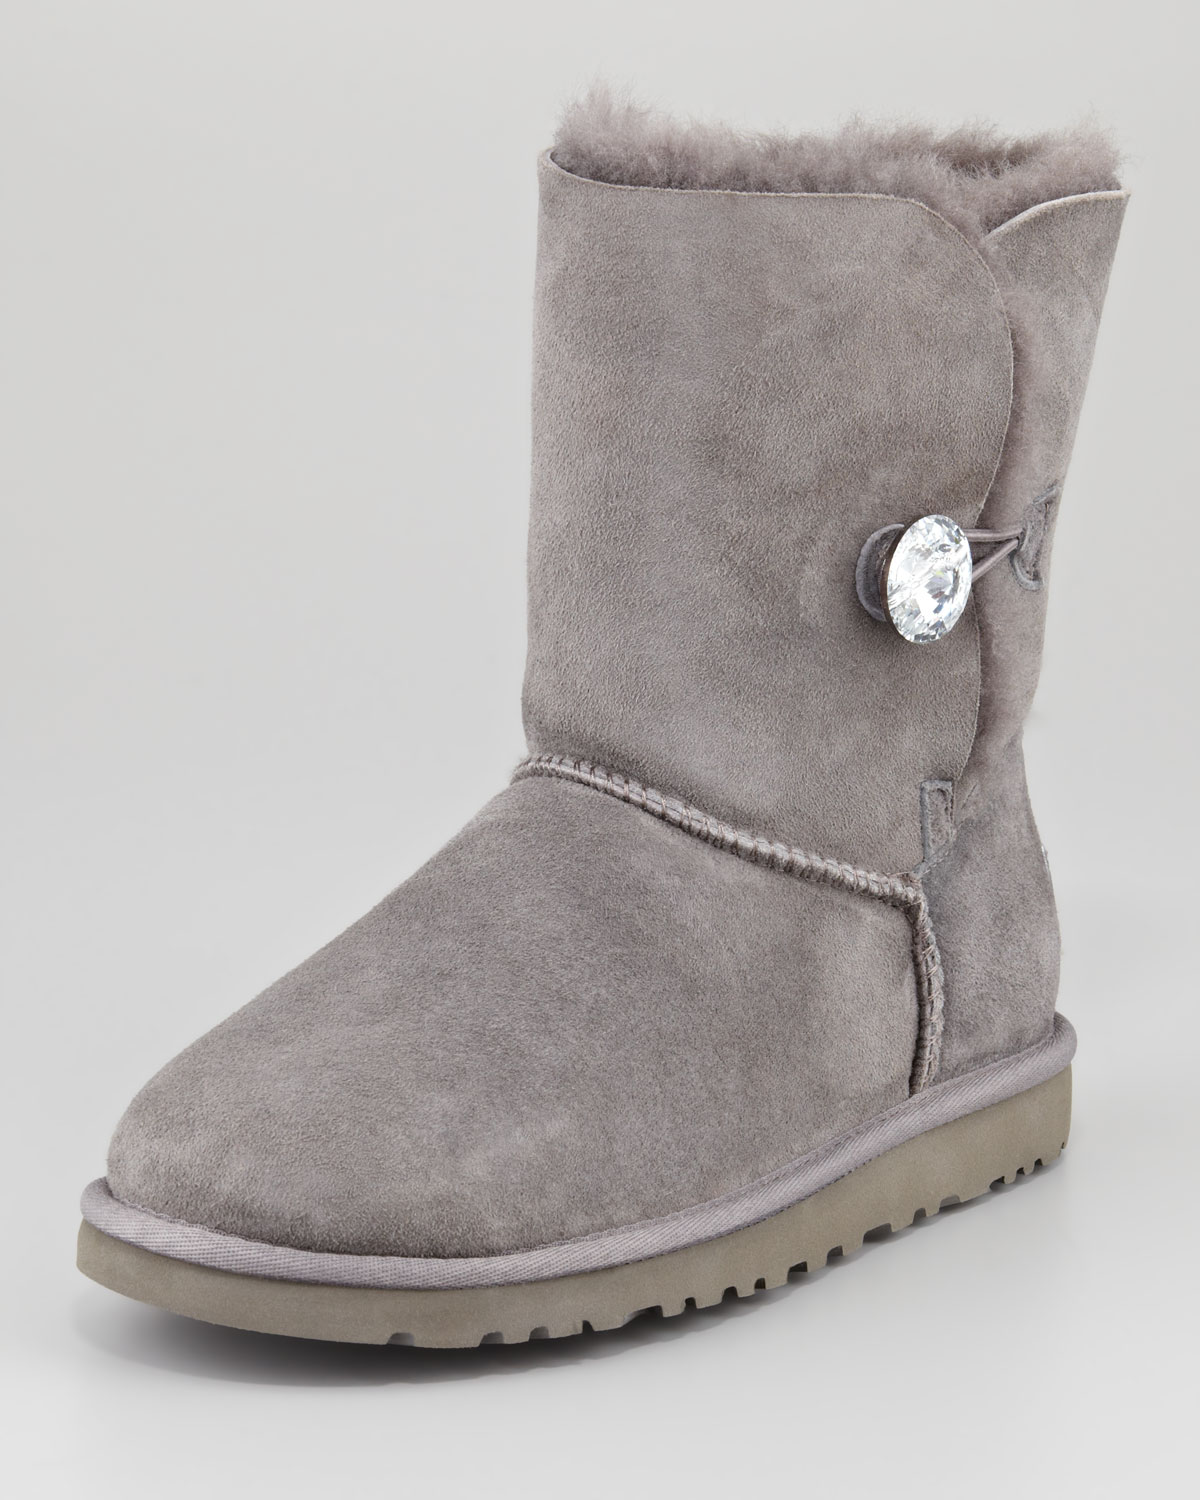 ugg bailey crystal button short boot gray in gray lyst. Black Bedroom Furniture Sets. Home Design Ideas